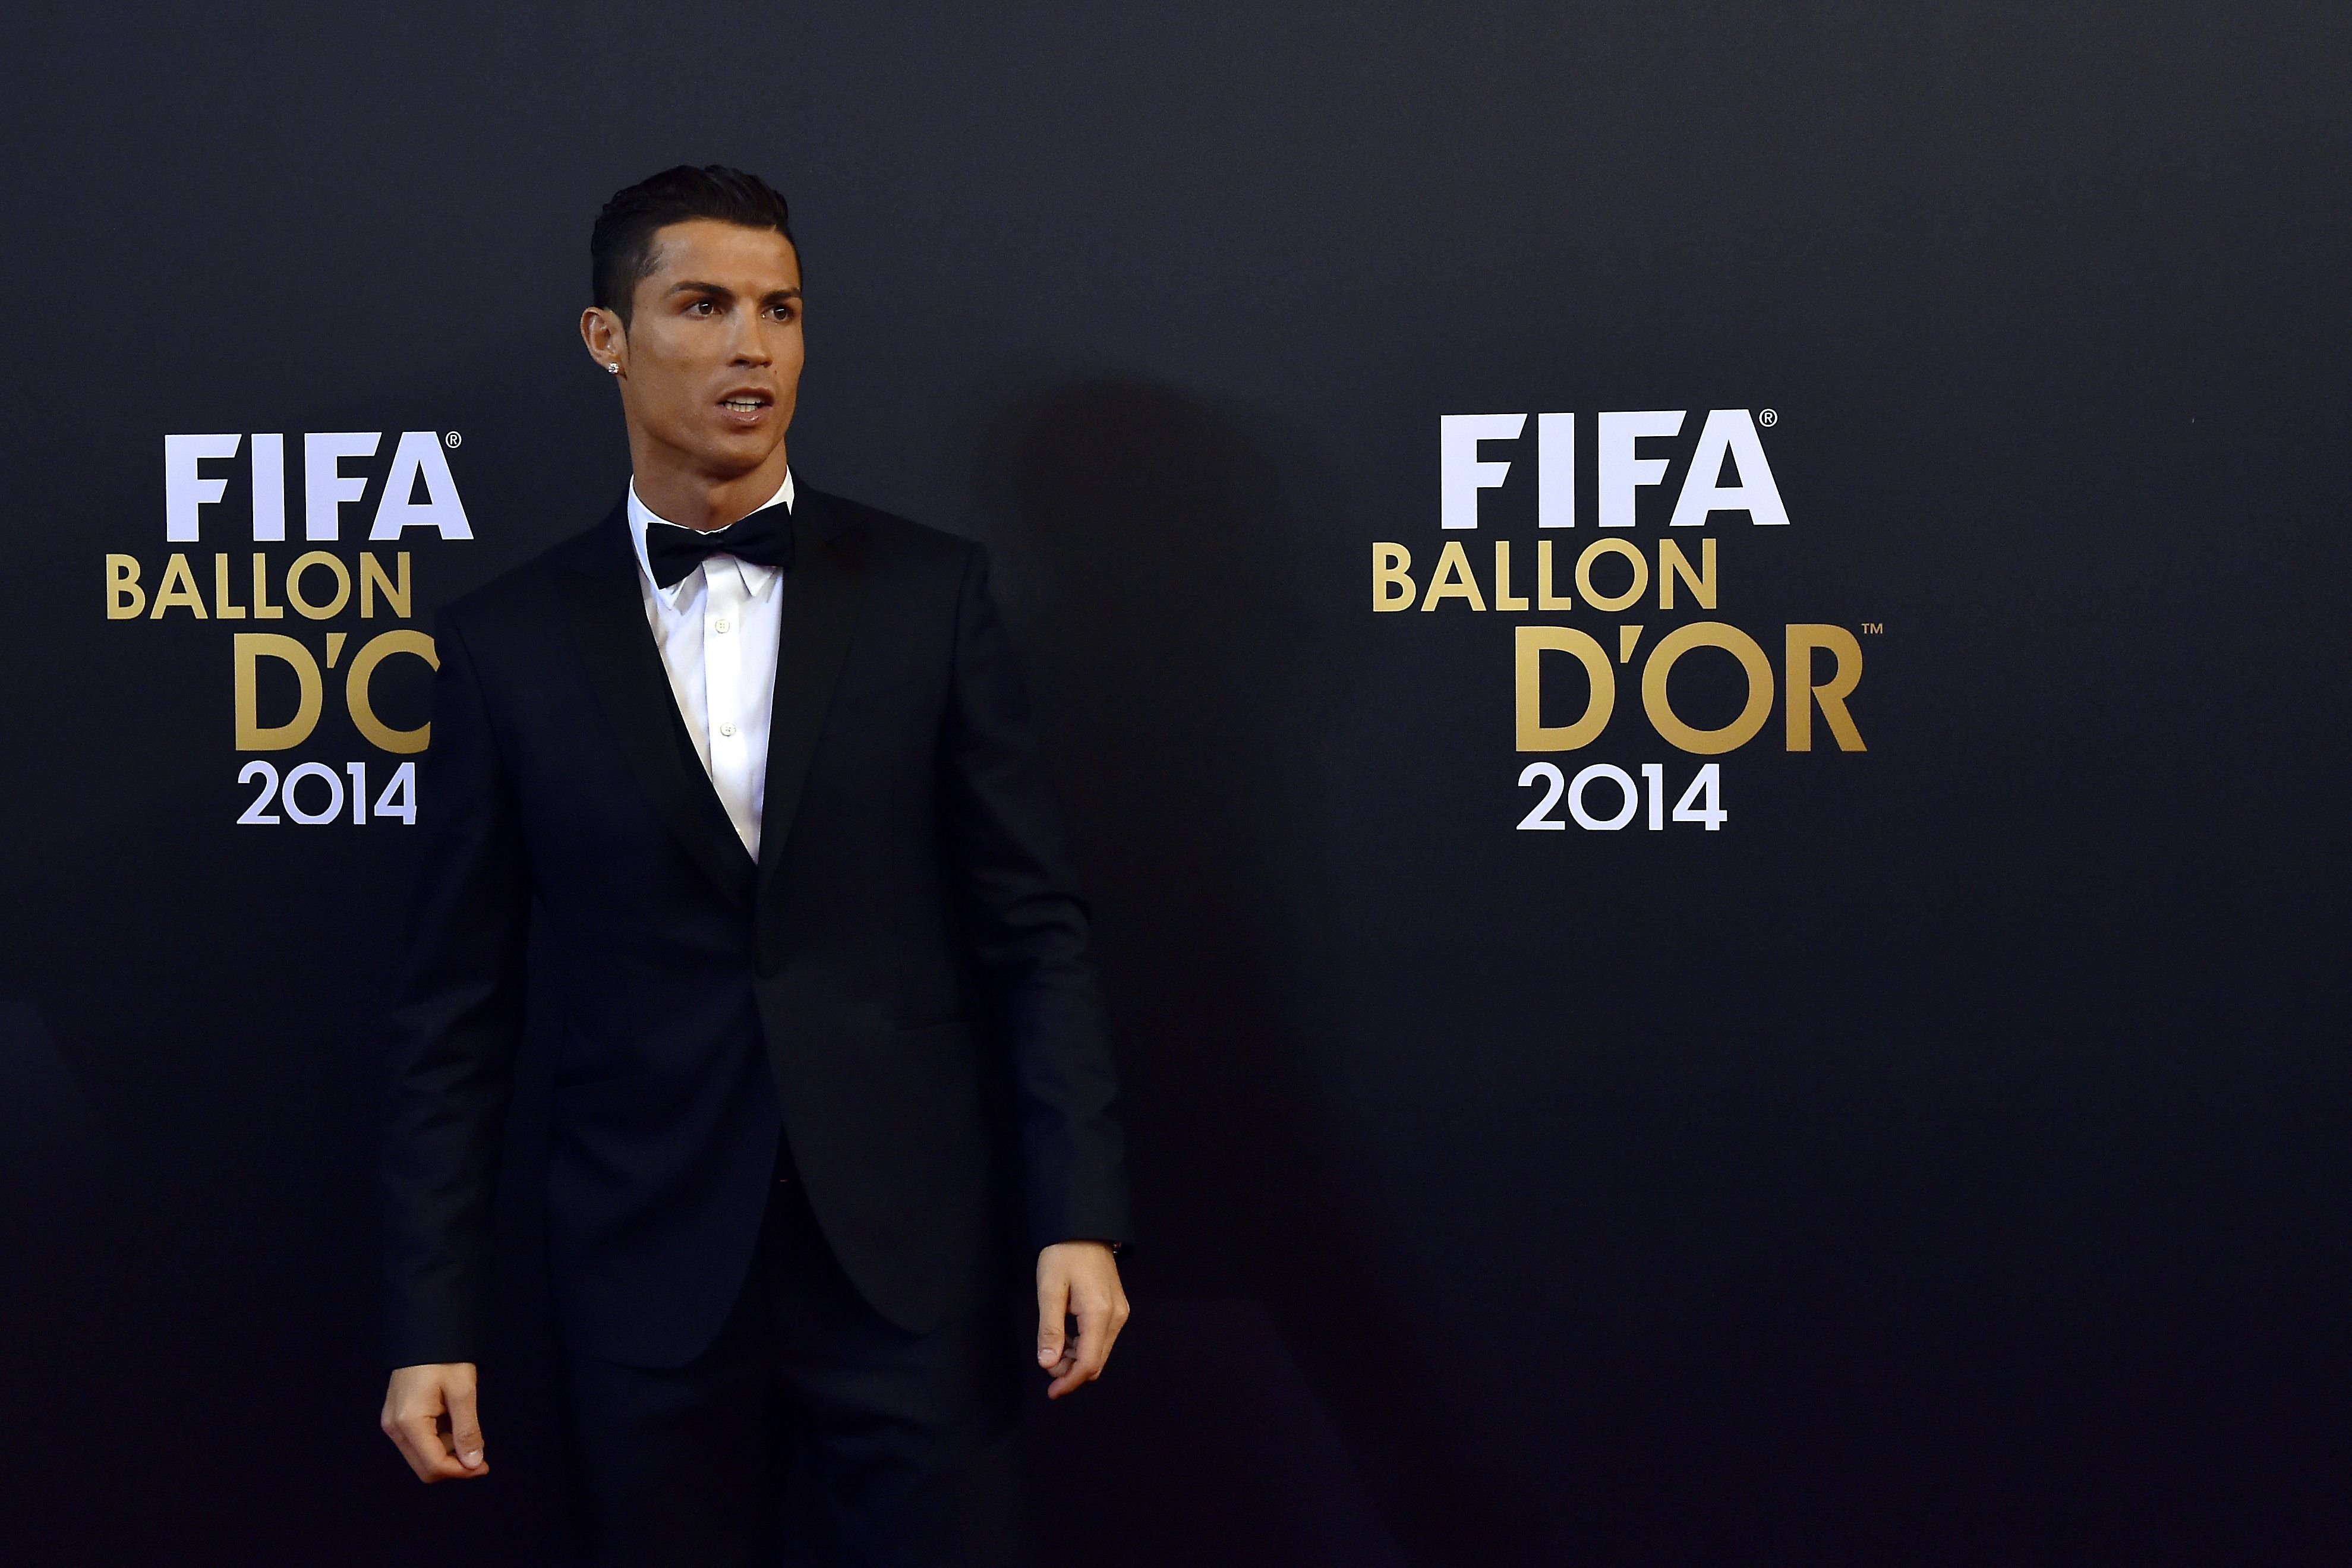 Real Madrid and Portugal forward Cristiano Ronaldo arrives during  the red carpet ceremony ahead of the 2014 FIFA Ballon d'Or award ceremony at the Kongresshaus in Zurich on Jan. 12, 2015